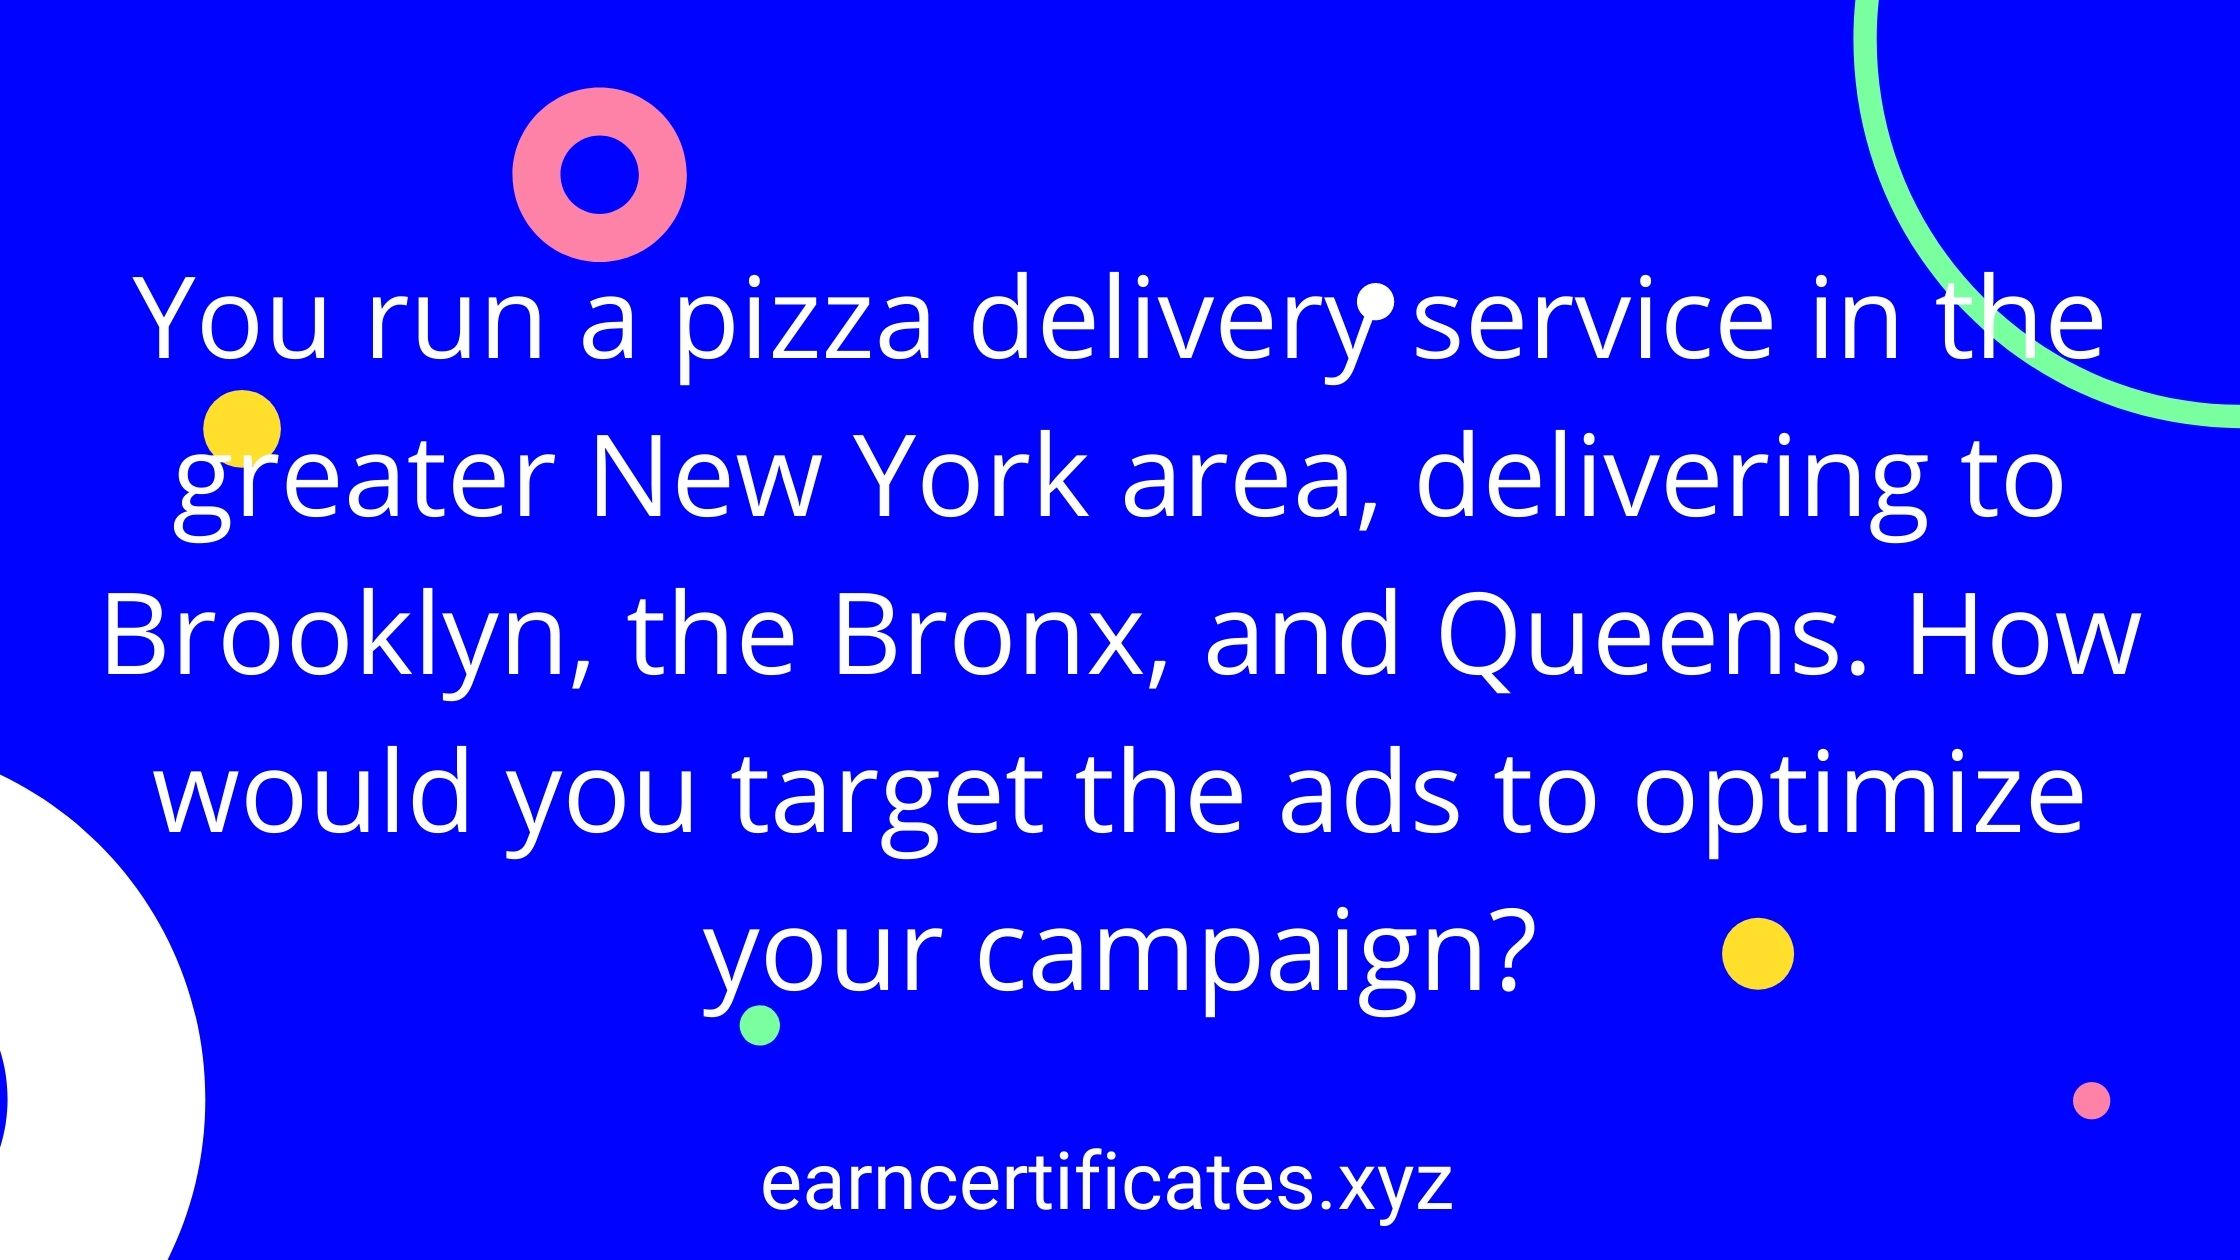 You run a pizza delivery service in the greater New York area, delivering to Brooklyn, the Bronx, and Queens. How would you target the ads to optimize your campaign?